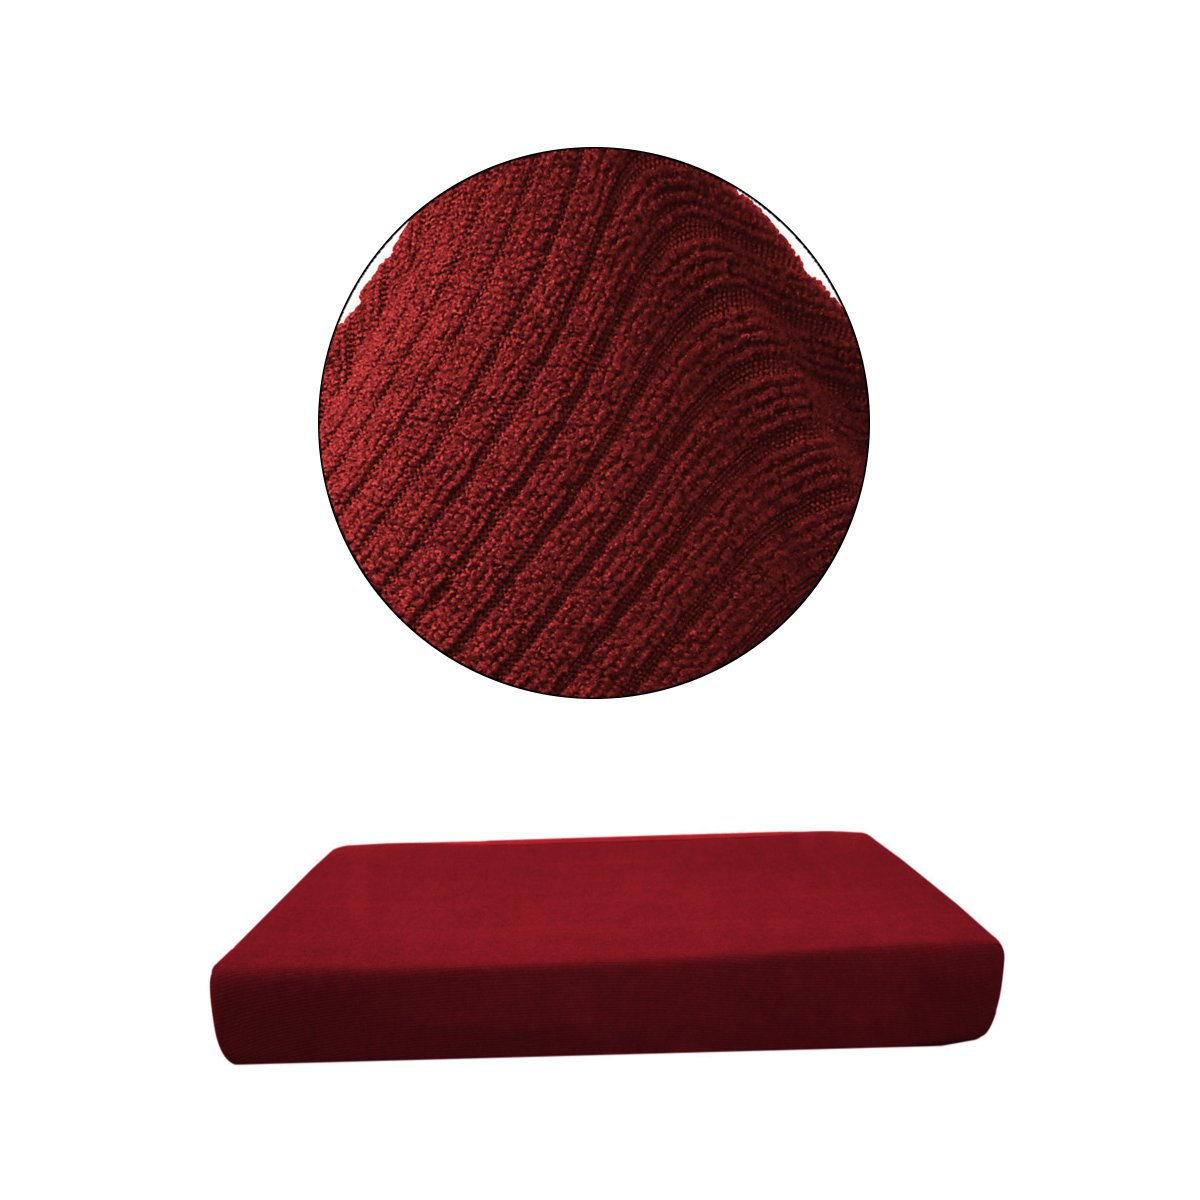 Replacement Sofa Seat Cushion Cover Couch Chair Slip Covers Protector Fabric Stretchy Single-Seater